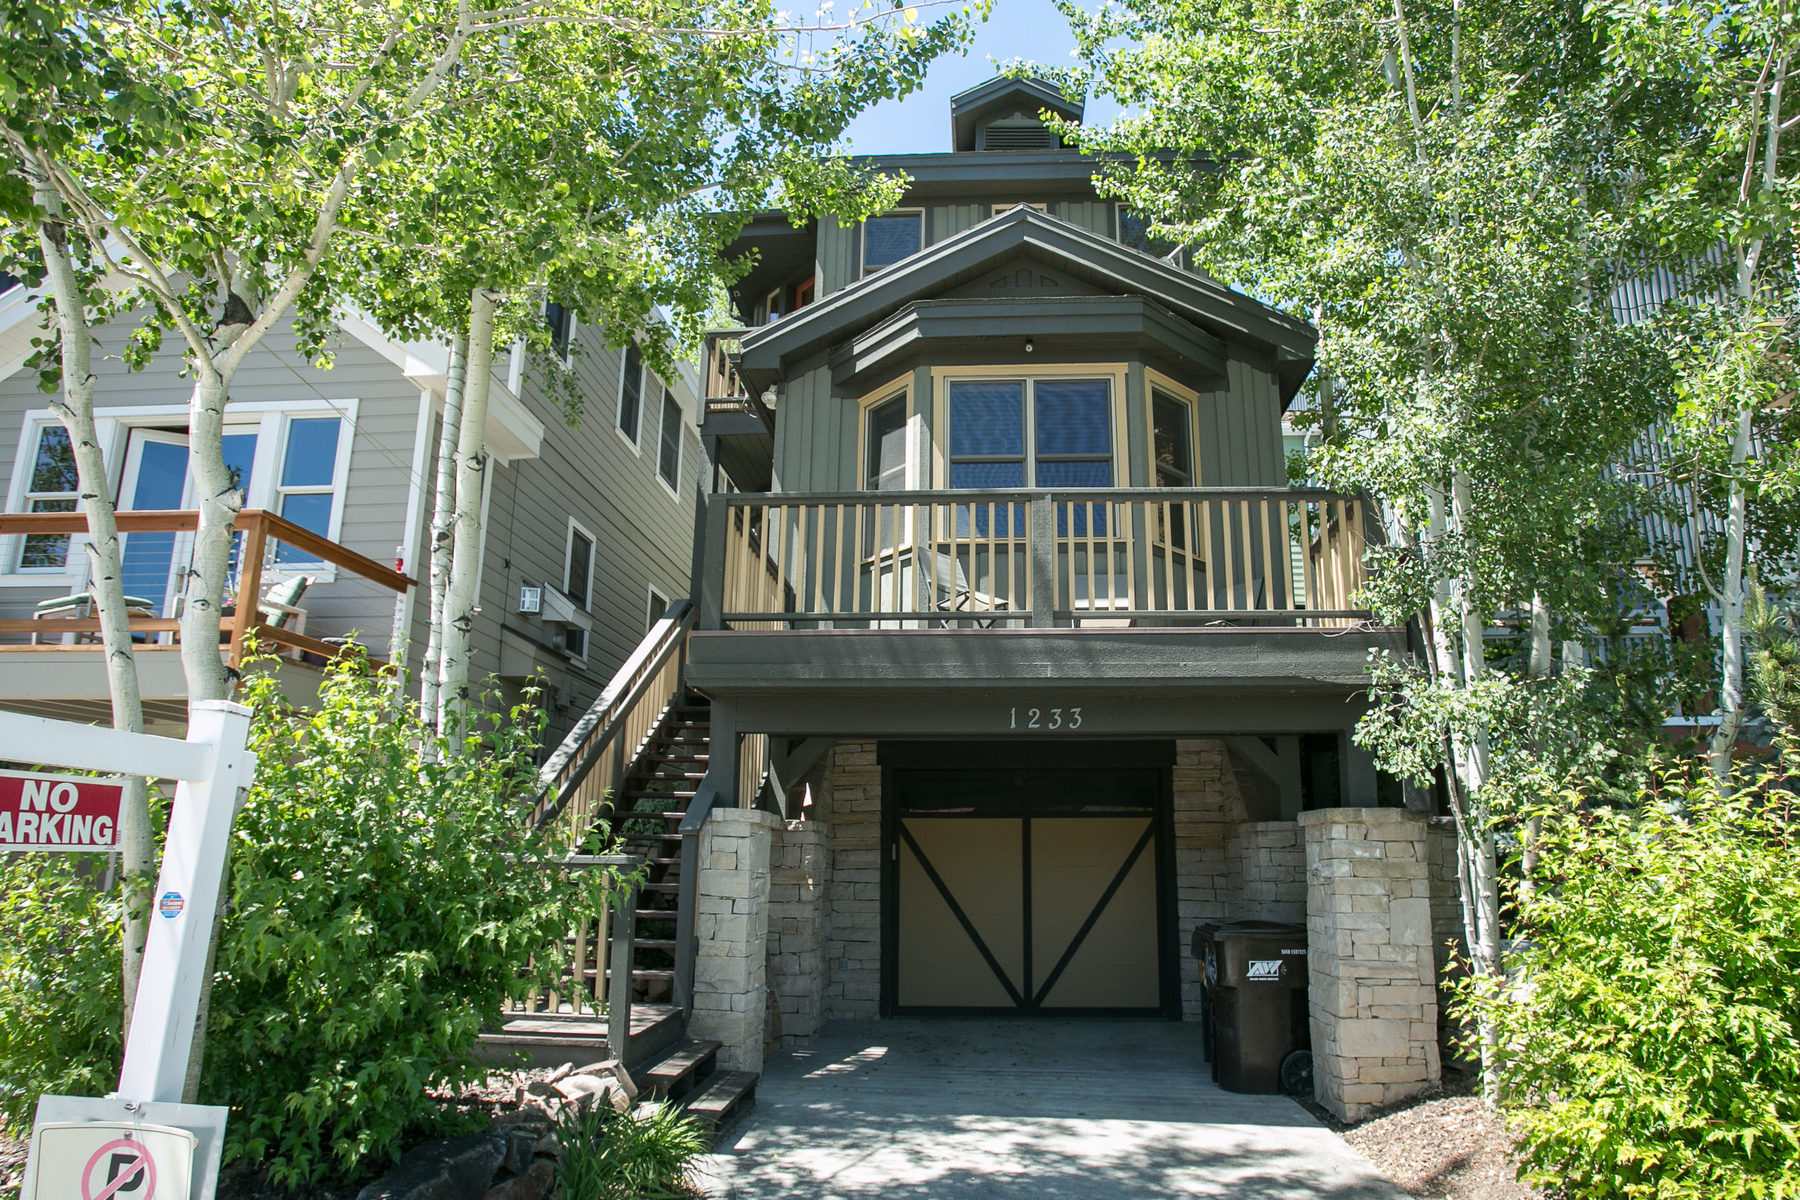 Maison unifamiliale pour l Vente à Gorgeous Home w/ Epic Location! Walk to Vail's Park City Mountain Resort. 1233 Empire Ave Park City, Utah 84060 États-Unis